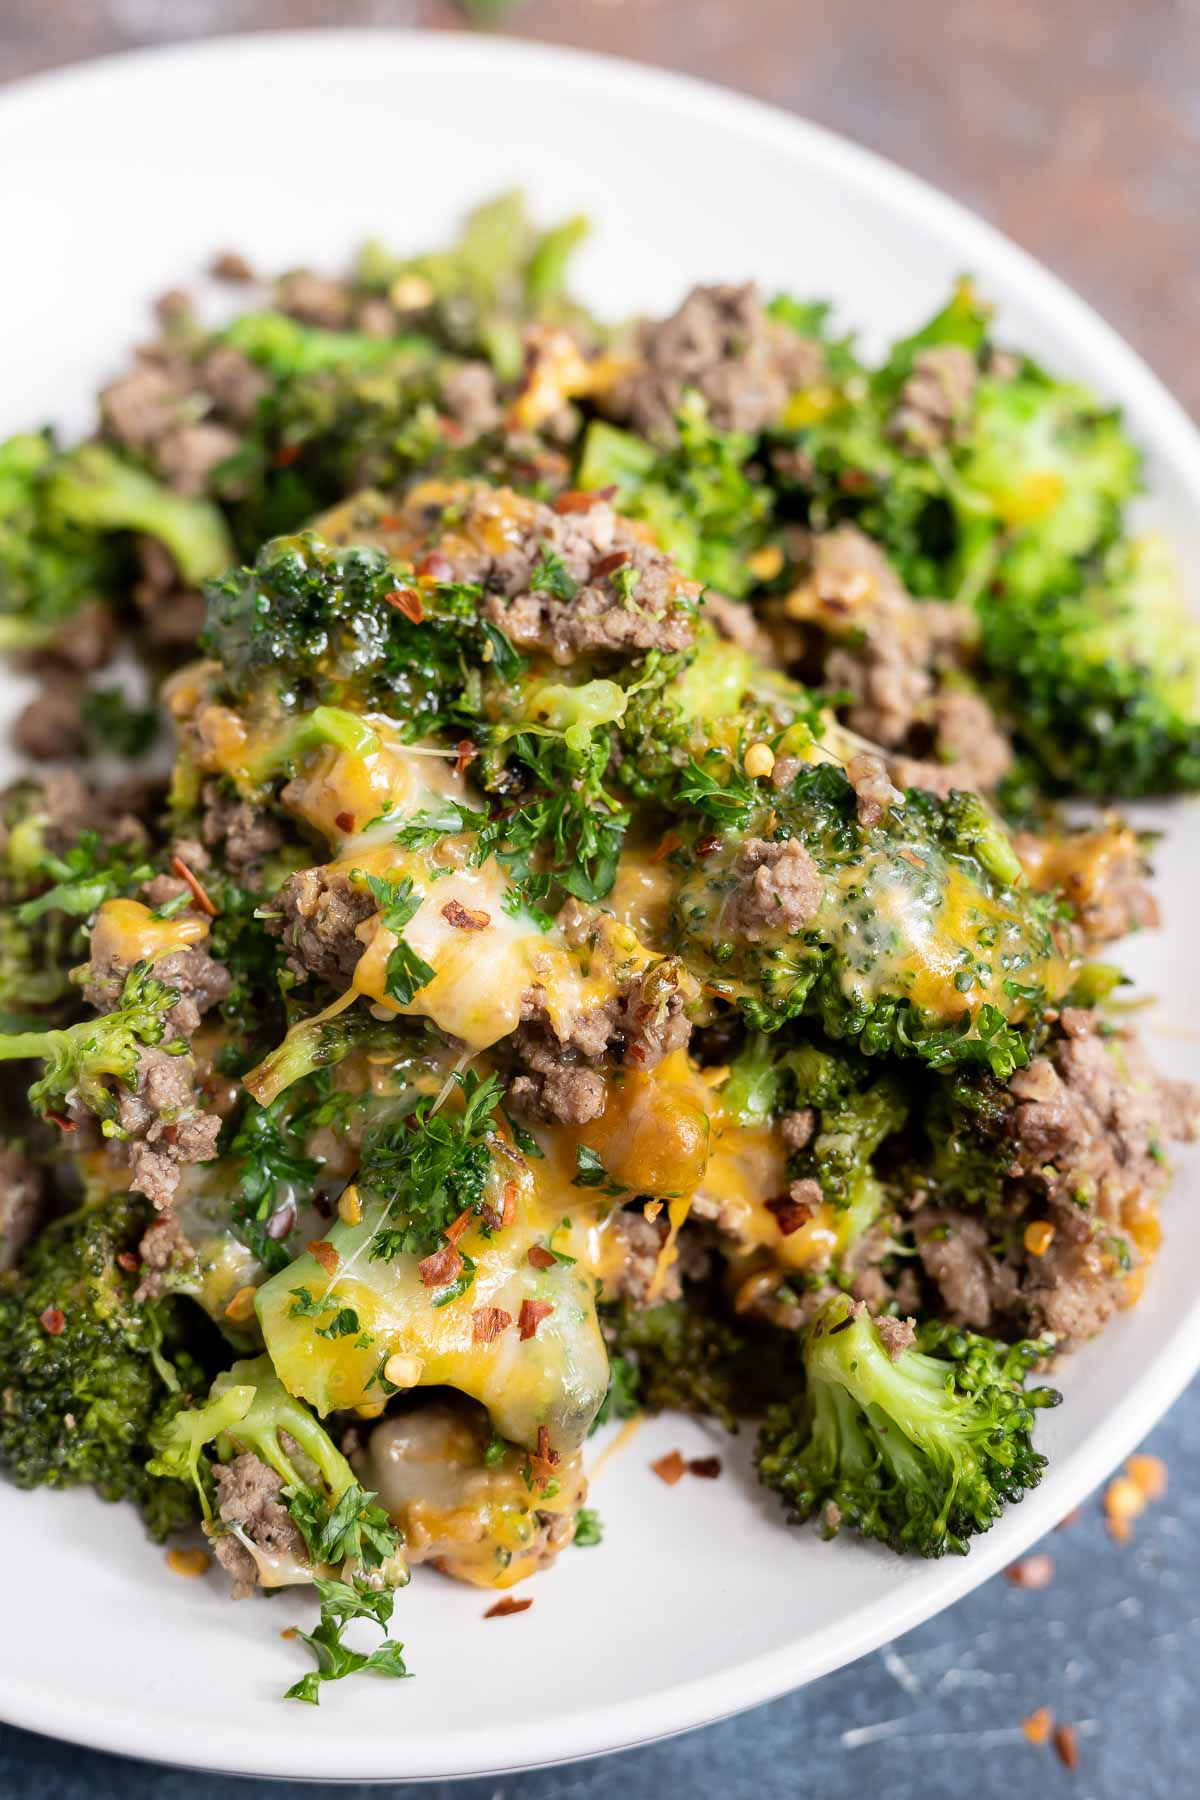 cheesy broccoli and beef served on white plate